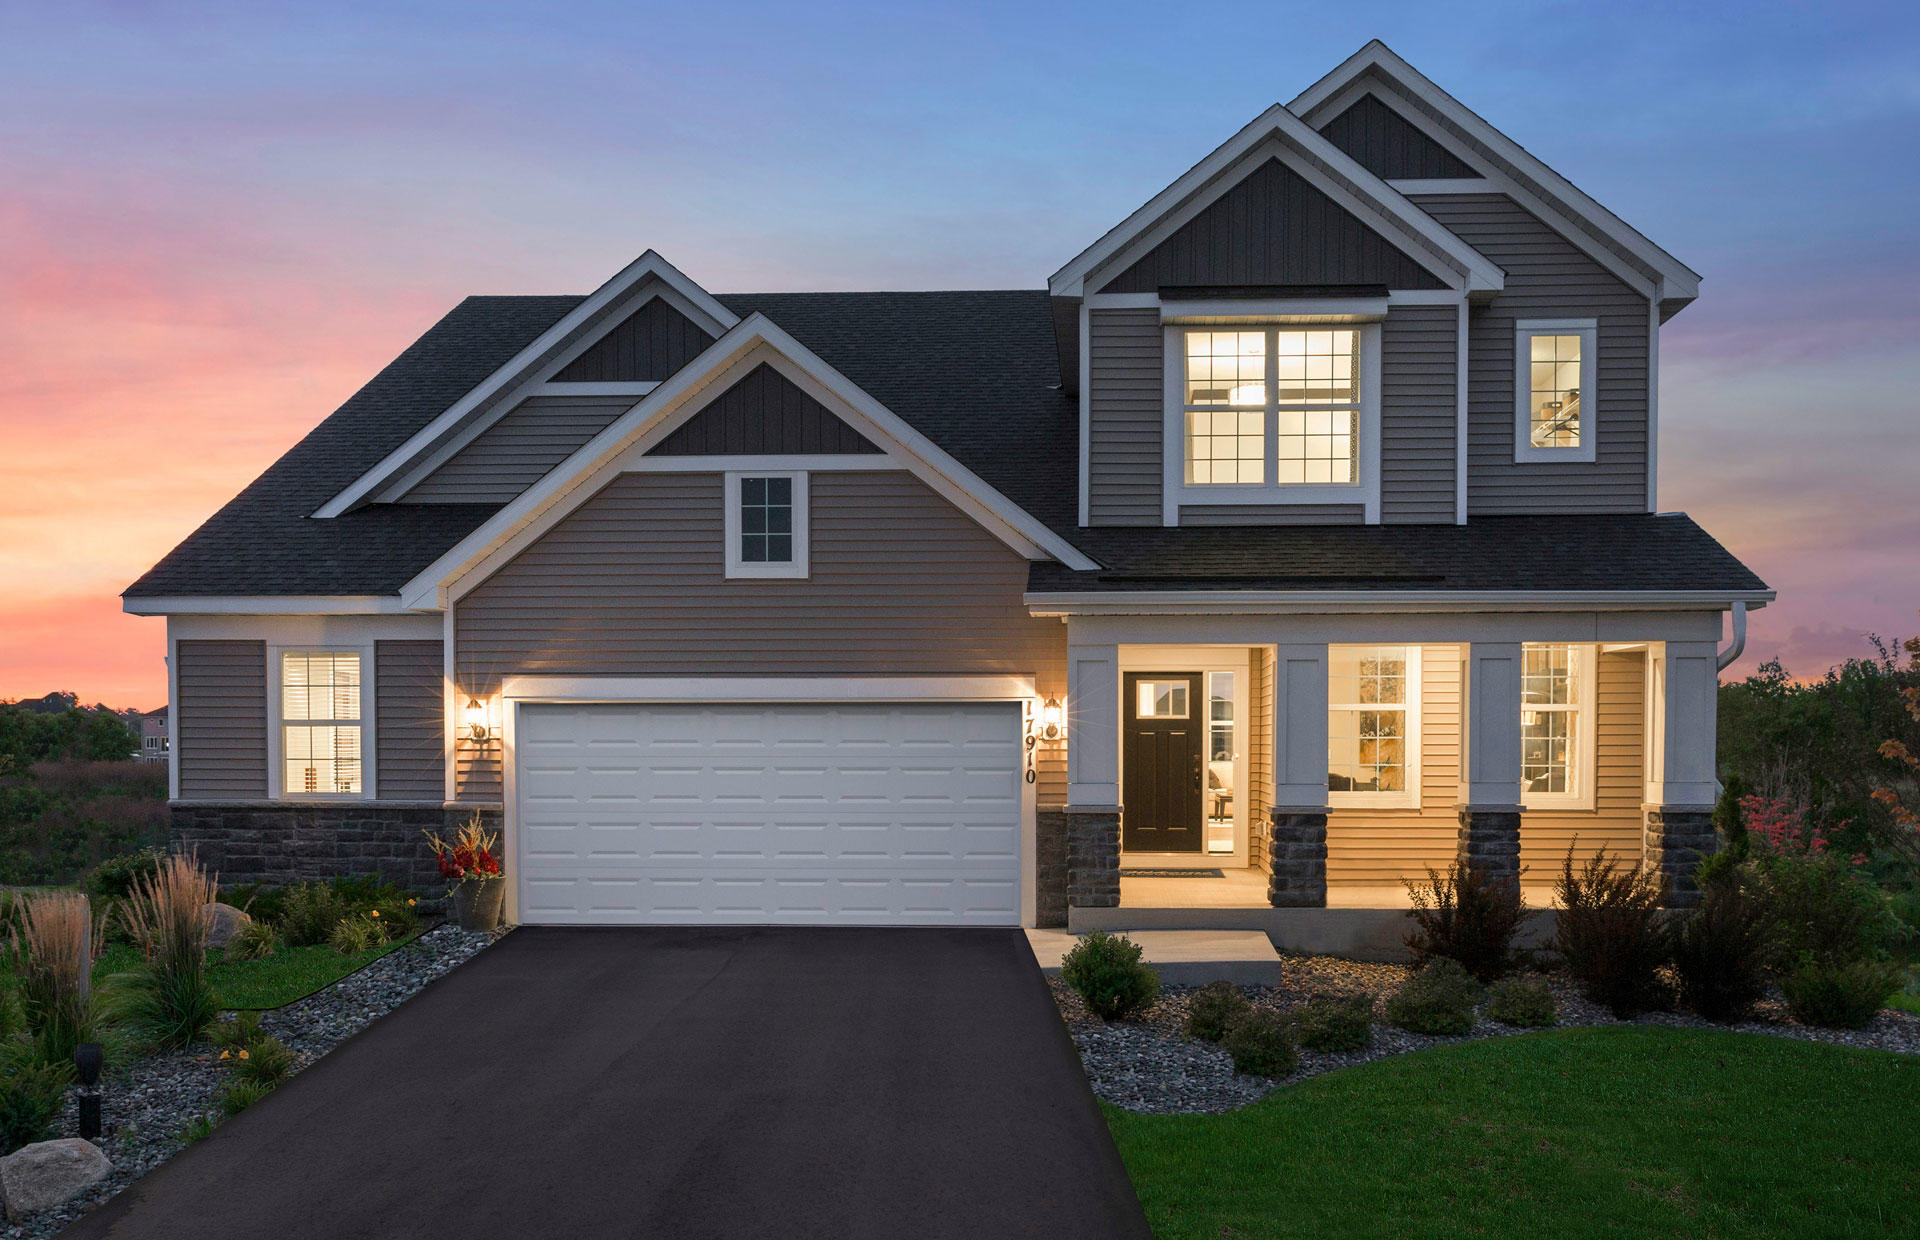 Territorial Trail - Expressions Collection By Pulte Homes image 7